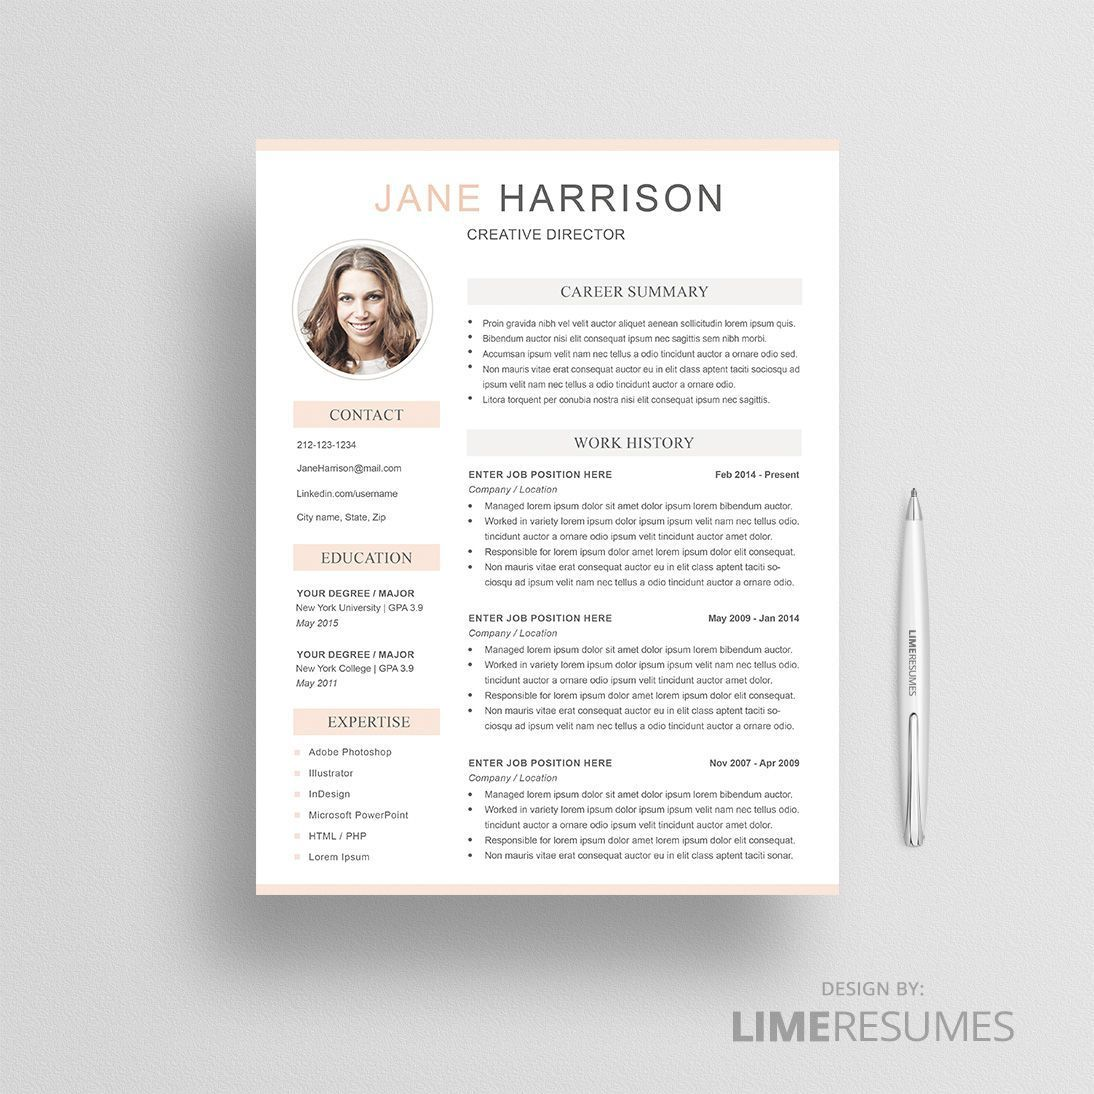 2 page resume template with photo is exactly what you need